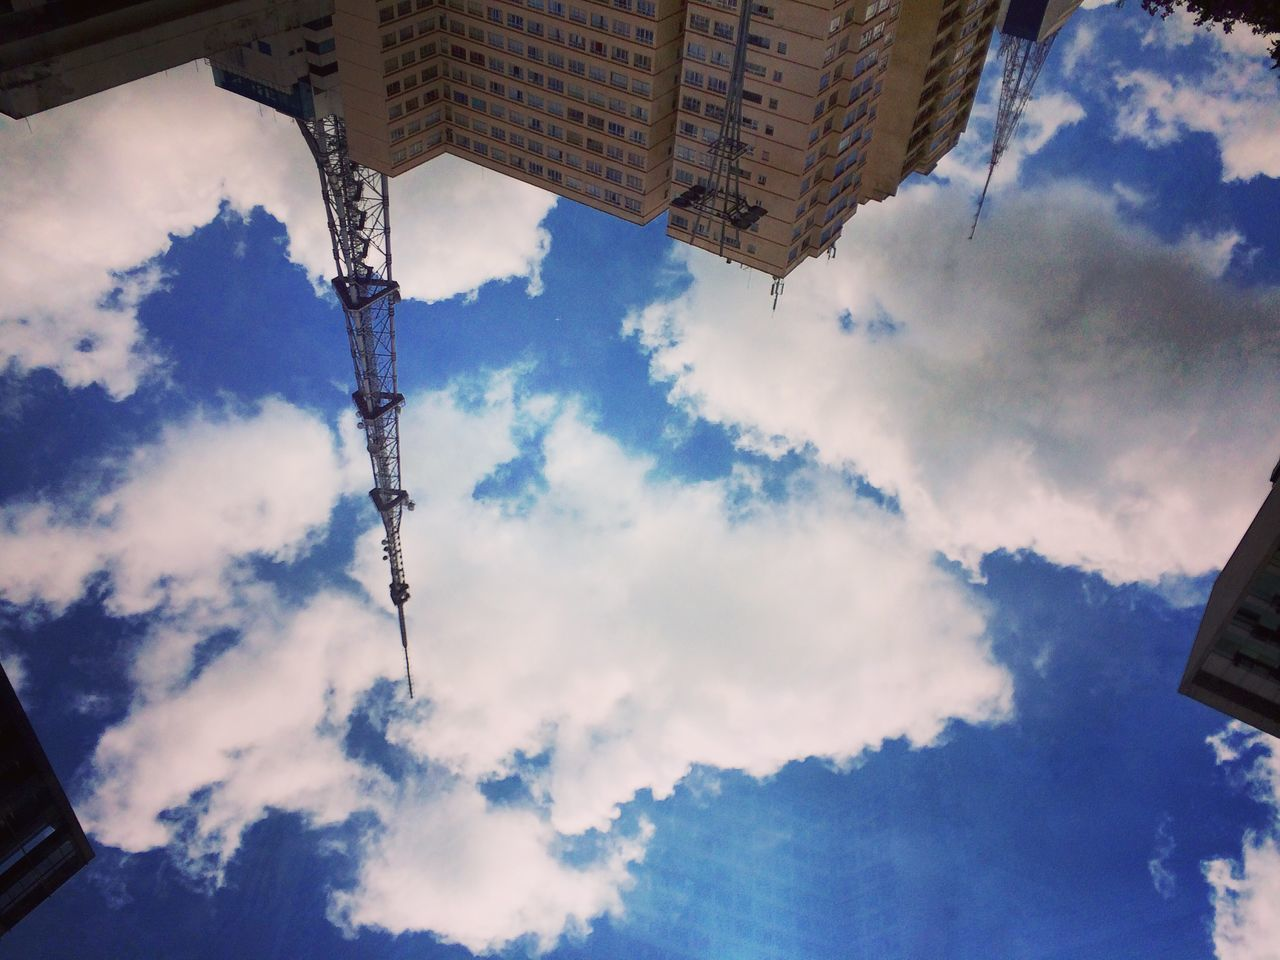 cloud - sky, low angle view, sky, outdoors, day, no people, architecture, built structure, basket, building exterior, nature, city